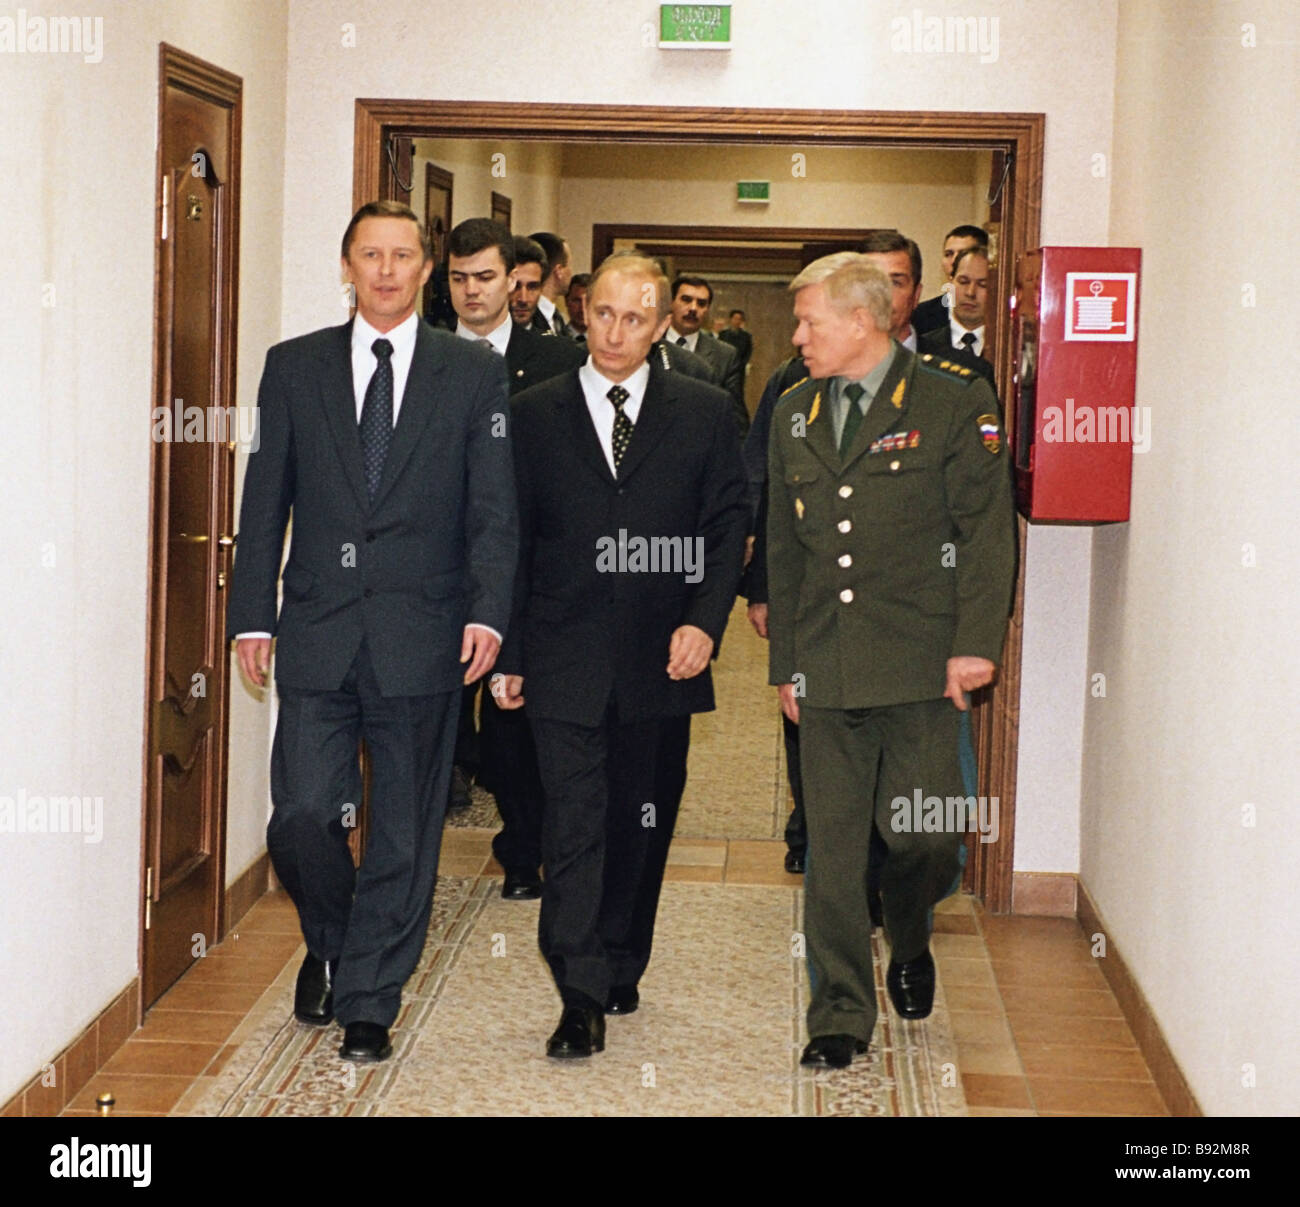 Russian President Vladimir Putin center accompanied by Defense Minister Sergei Ivanov left visited the Museum of - Stock Image